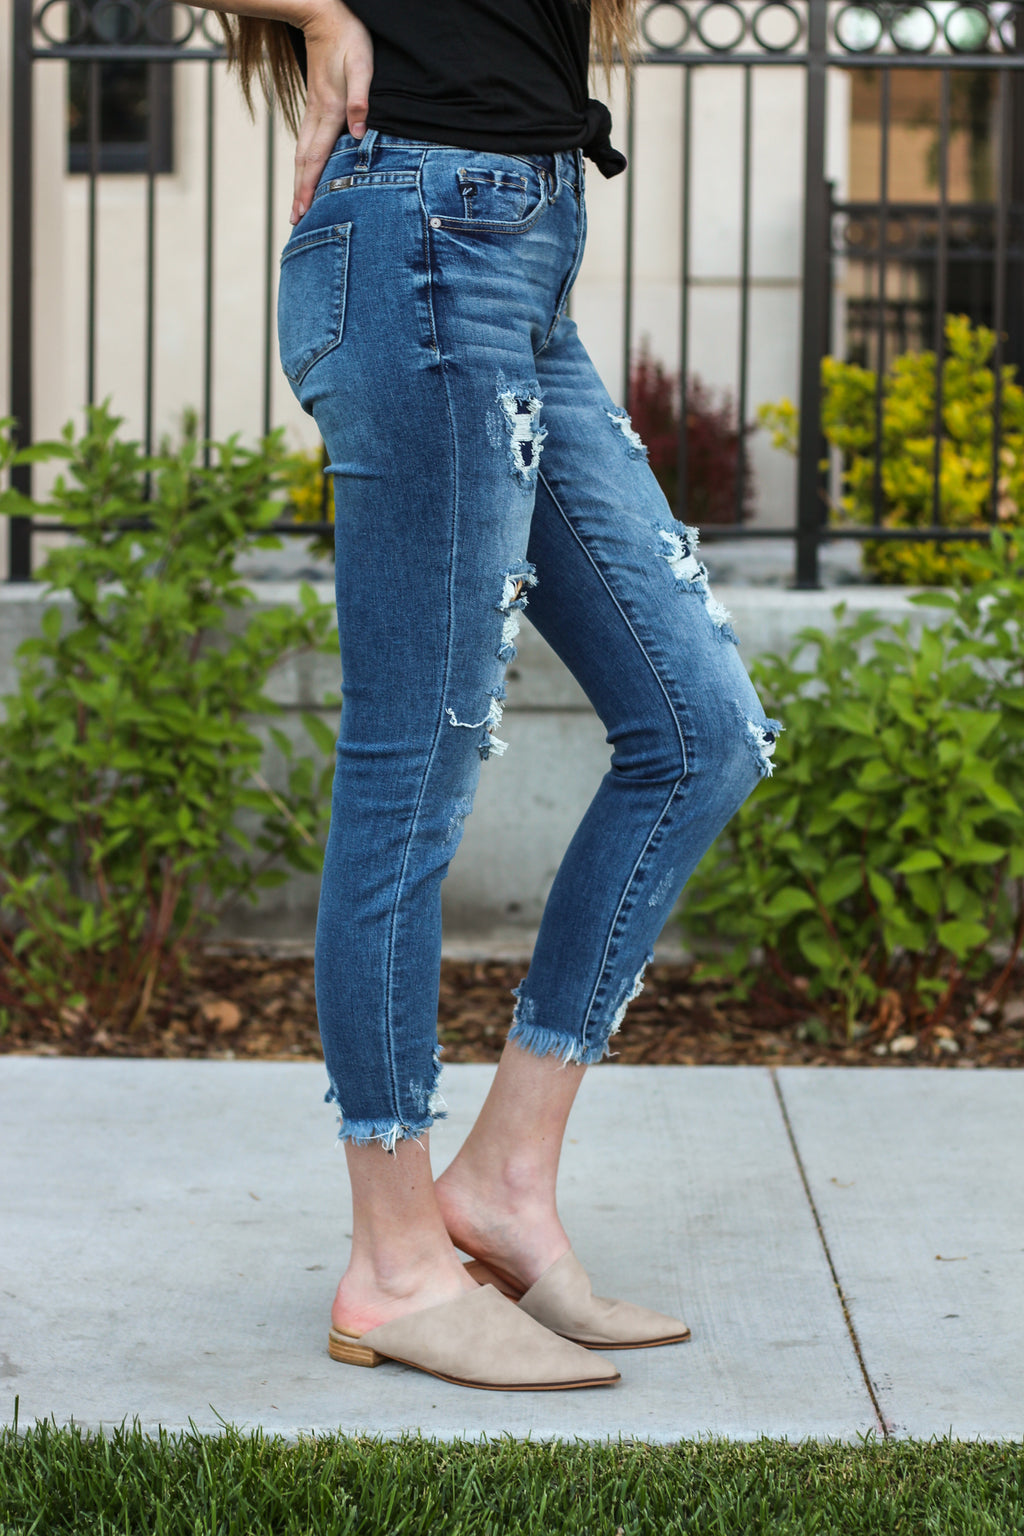 "KanCan Jeans  Collection: Core Style Color: Dark Wash Cut: Ankle Skinny, 27"" Inseam  Rise: High Rise, 9.5"" Front Rise 97% COTTON 3% SPANDEX Stitching: Classic Fly: Zipper Style #: KC6273D Contact us for any additional measurements or sizing   Mckenna is 5'10"" and 122 pounds. She wears a size small top, a 3 in jeans and a size 8.5 in shoes. She is wearing a 25/3 in these jeans."